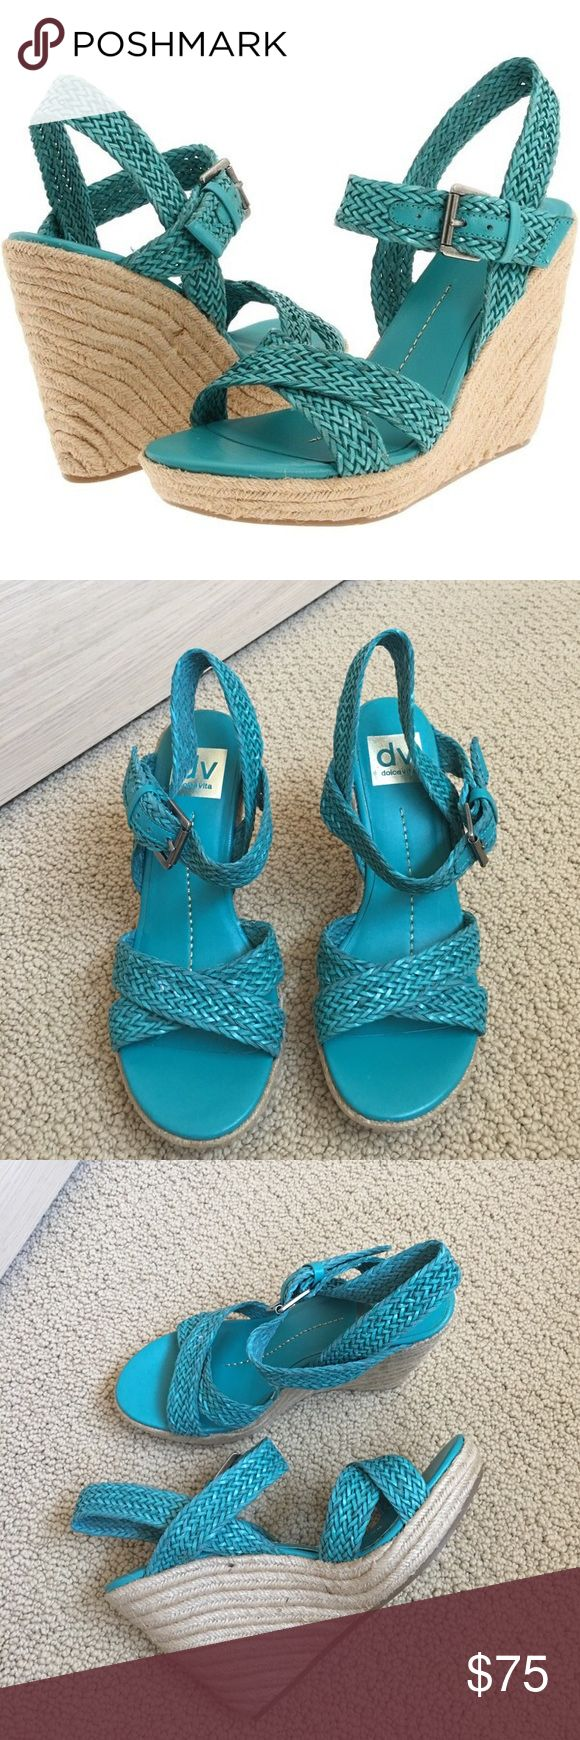 DOLCE VITA Wedge Sandals (NWOT) DV Turquoise / Teal wedged sandals perfect for spring and summer! Worn once indoors, condition like new! Good stability and comfy! In original boxes. DV by Dolce Vita Shoes Wedges